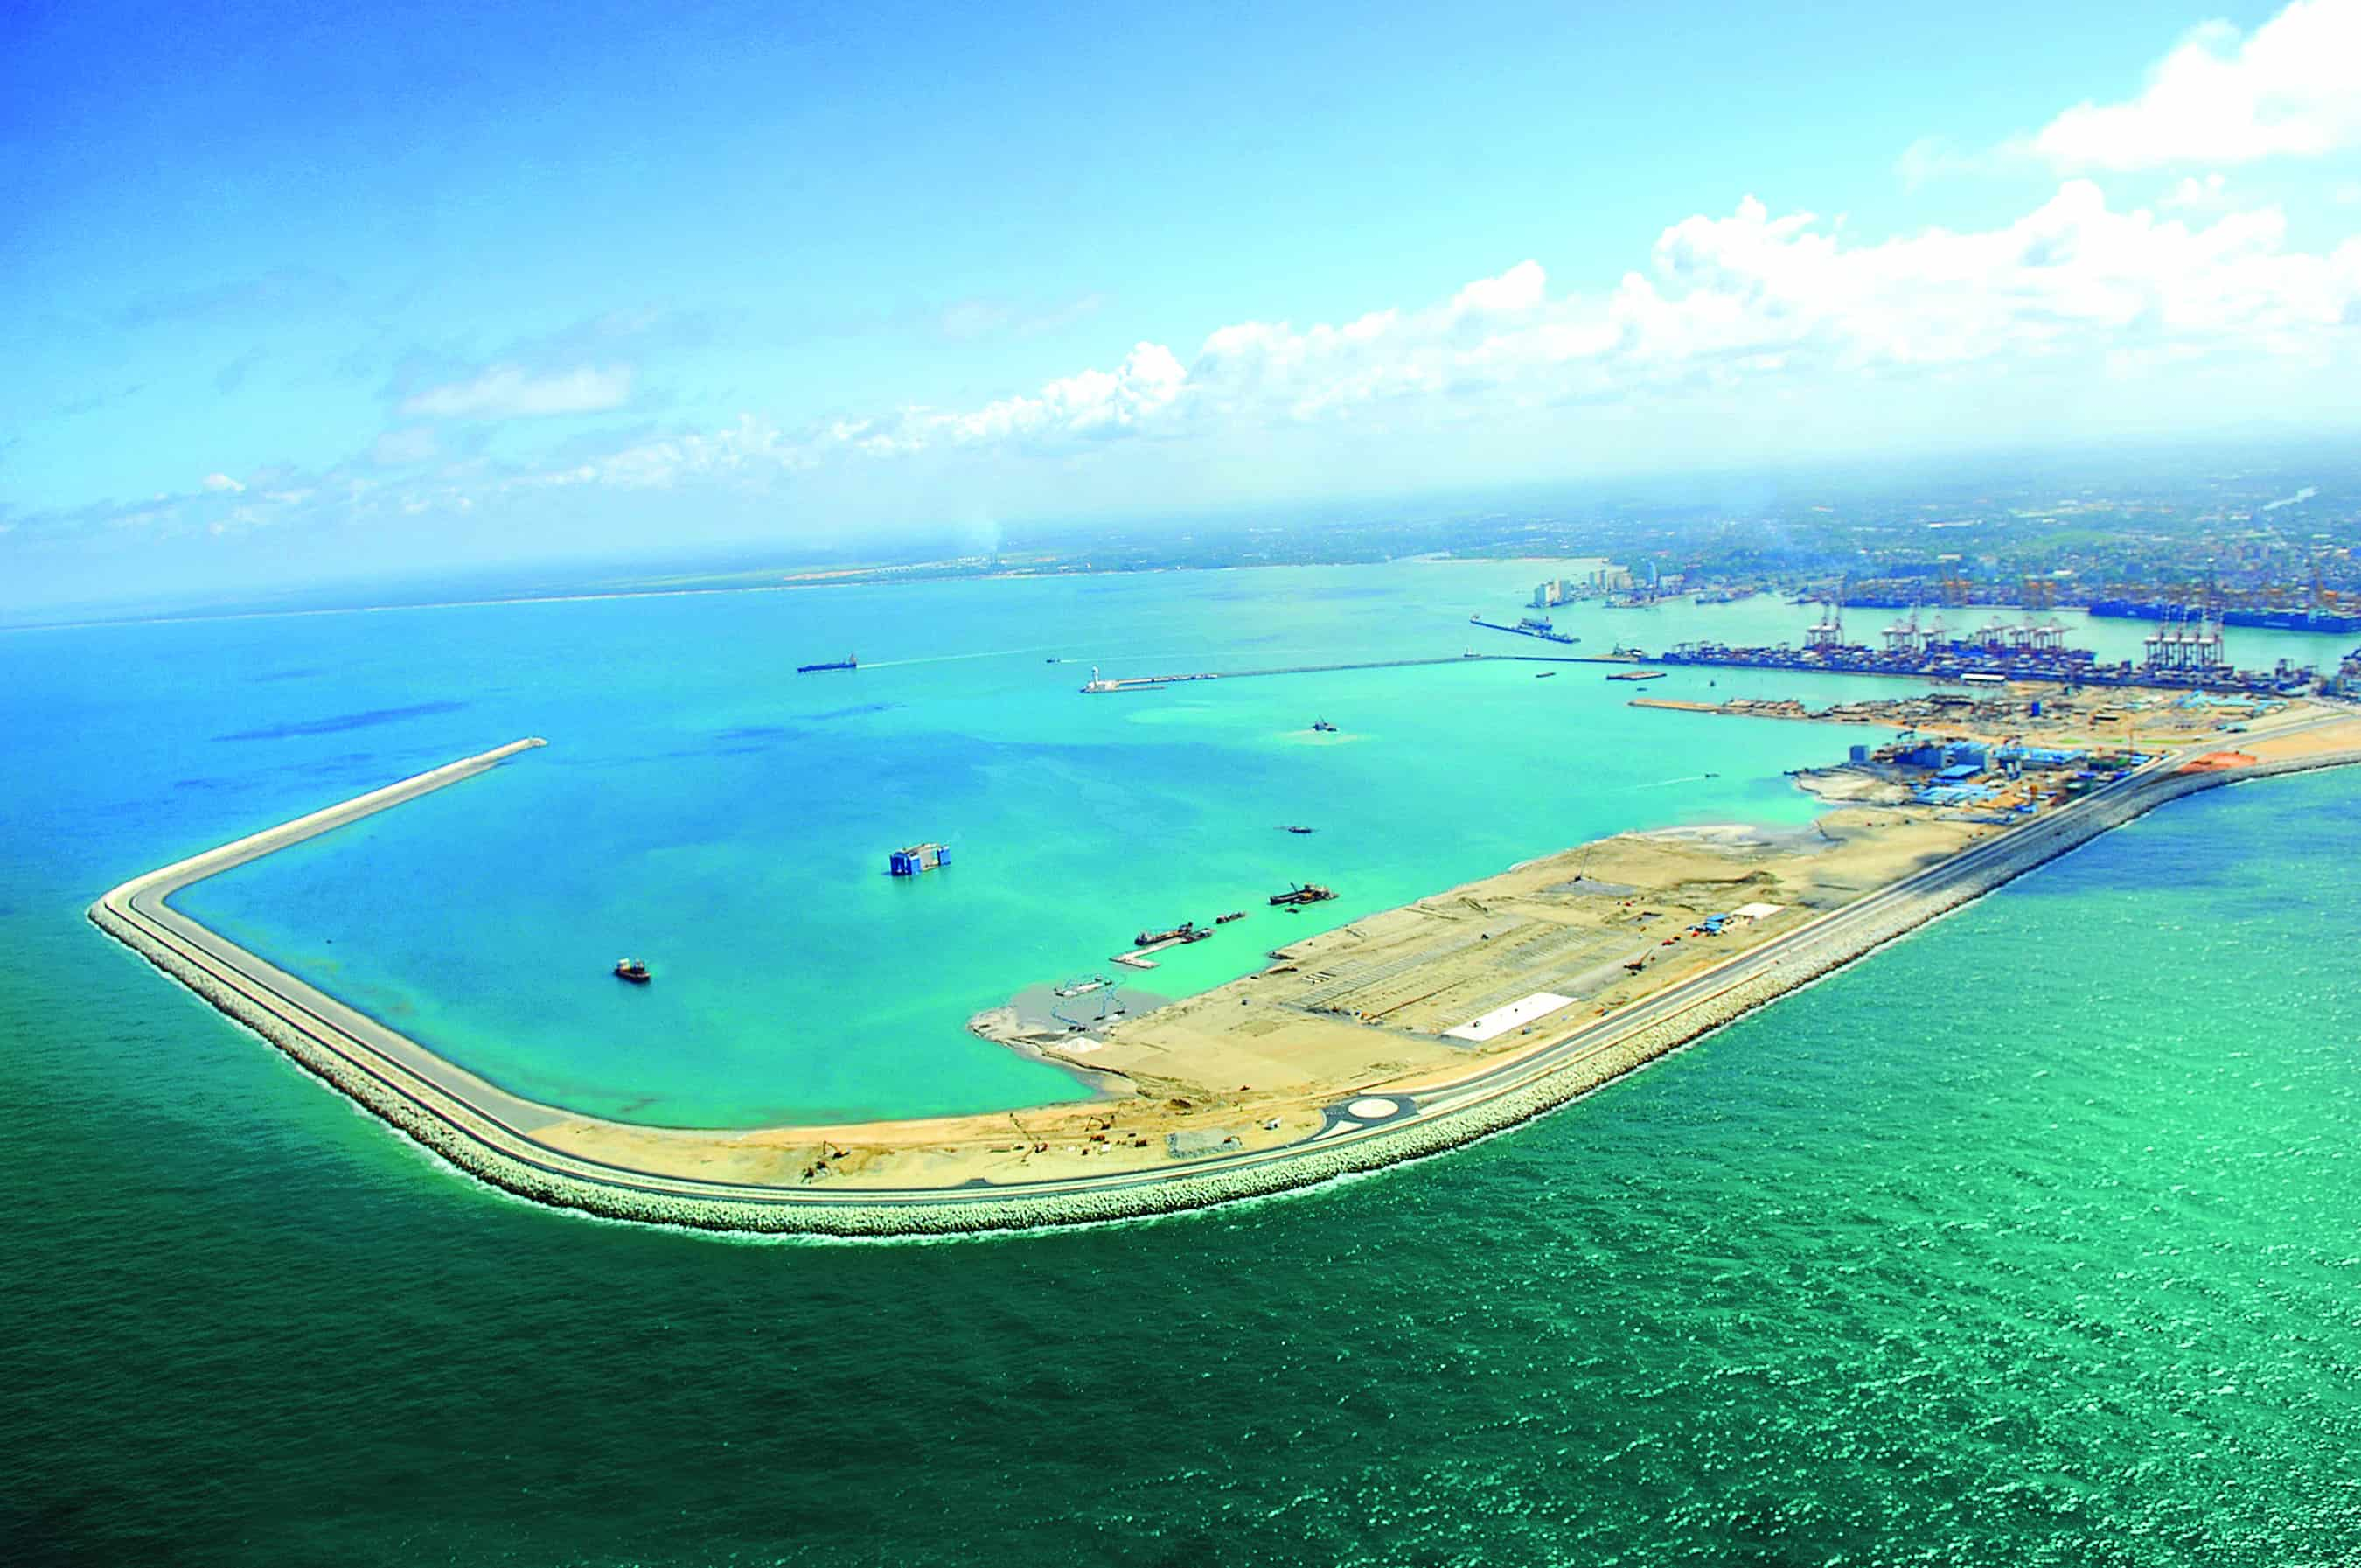 Sri Lanka to expand Colombo's East Container Terminal